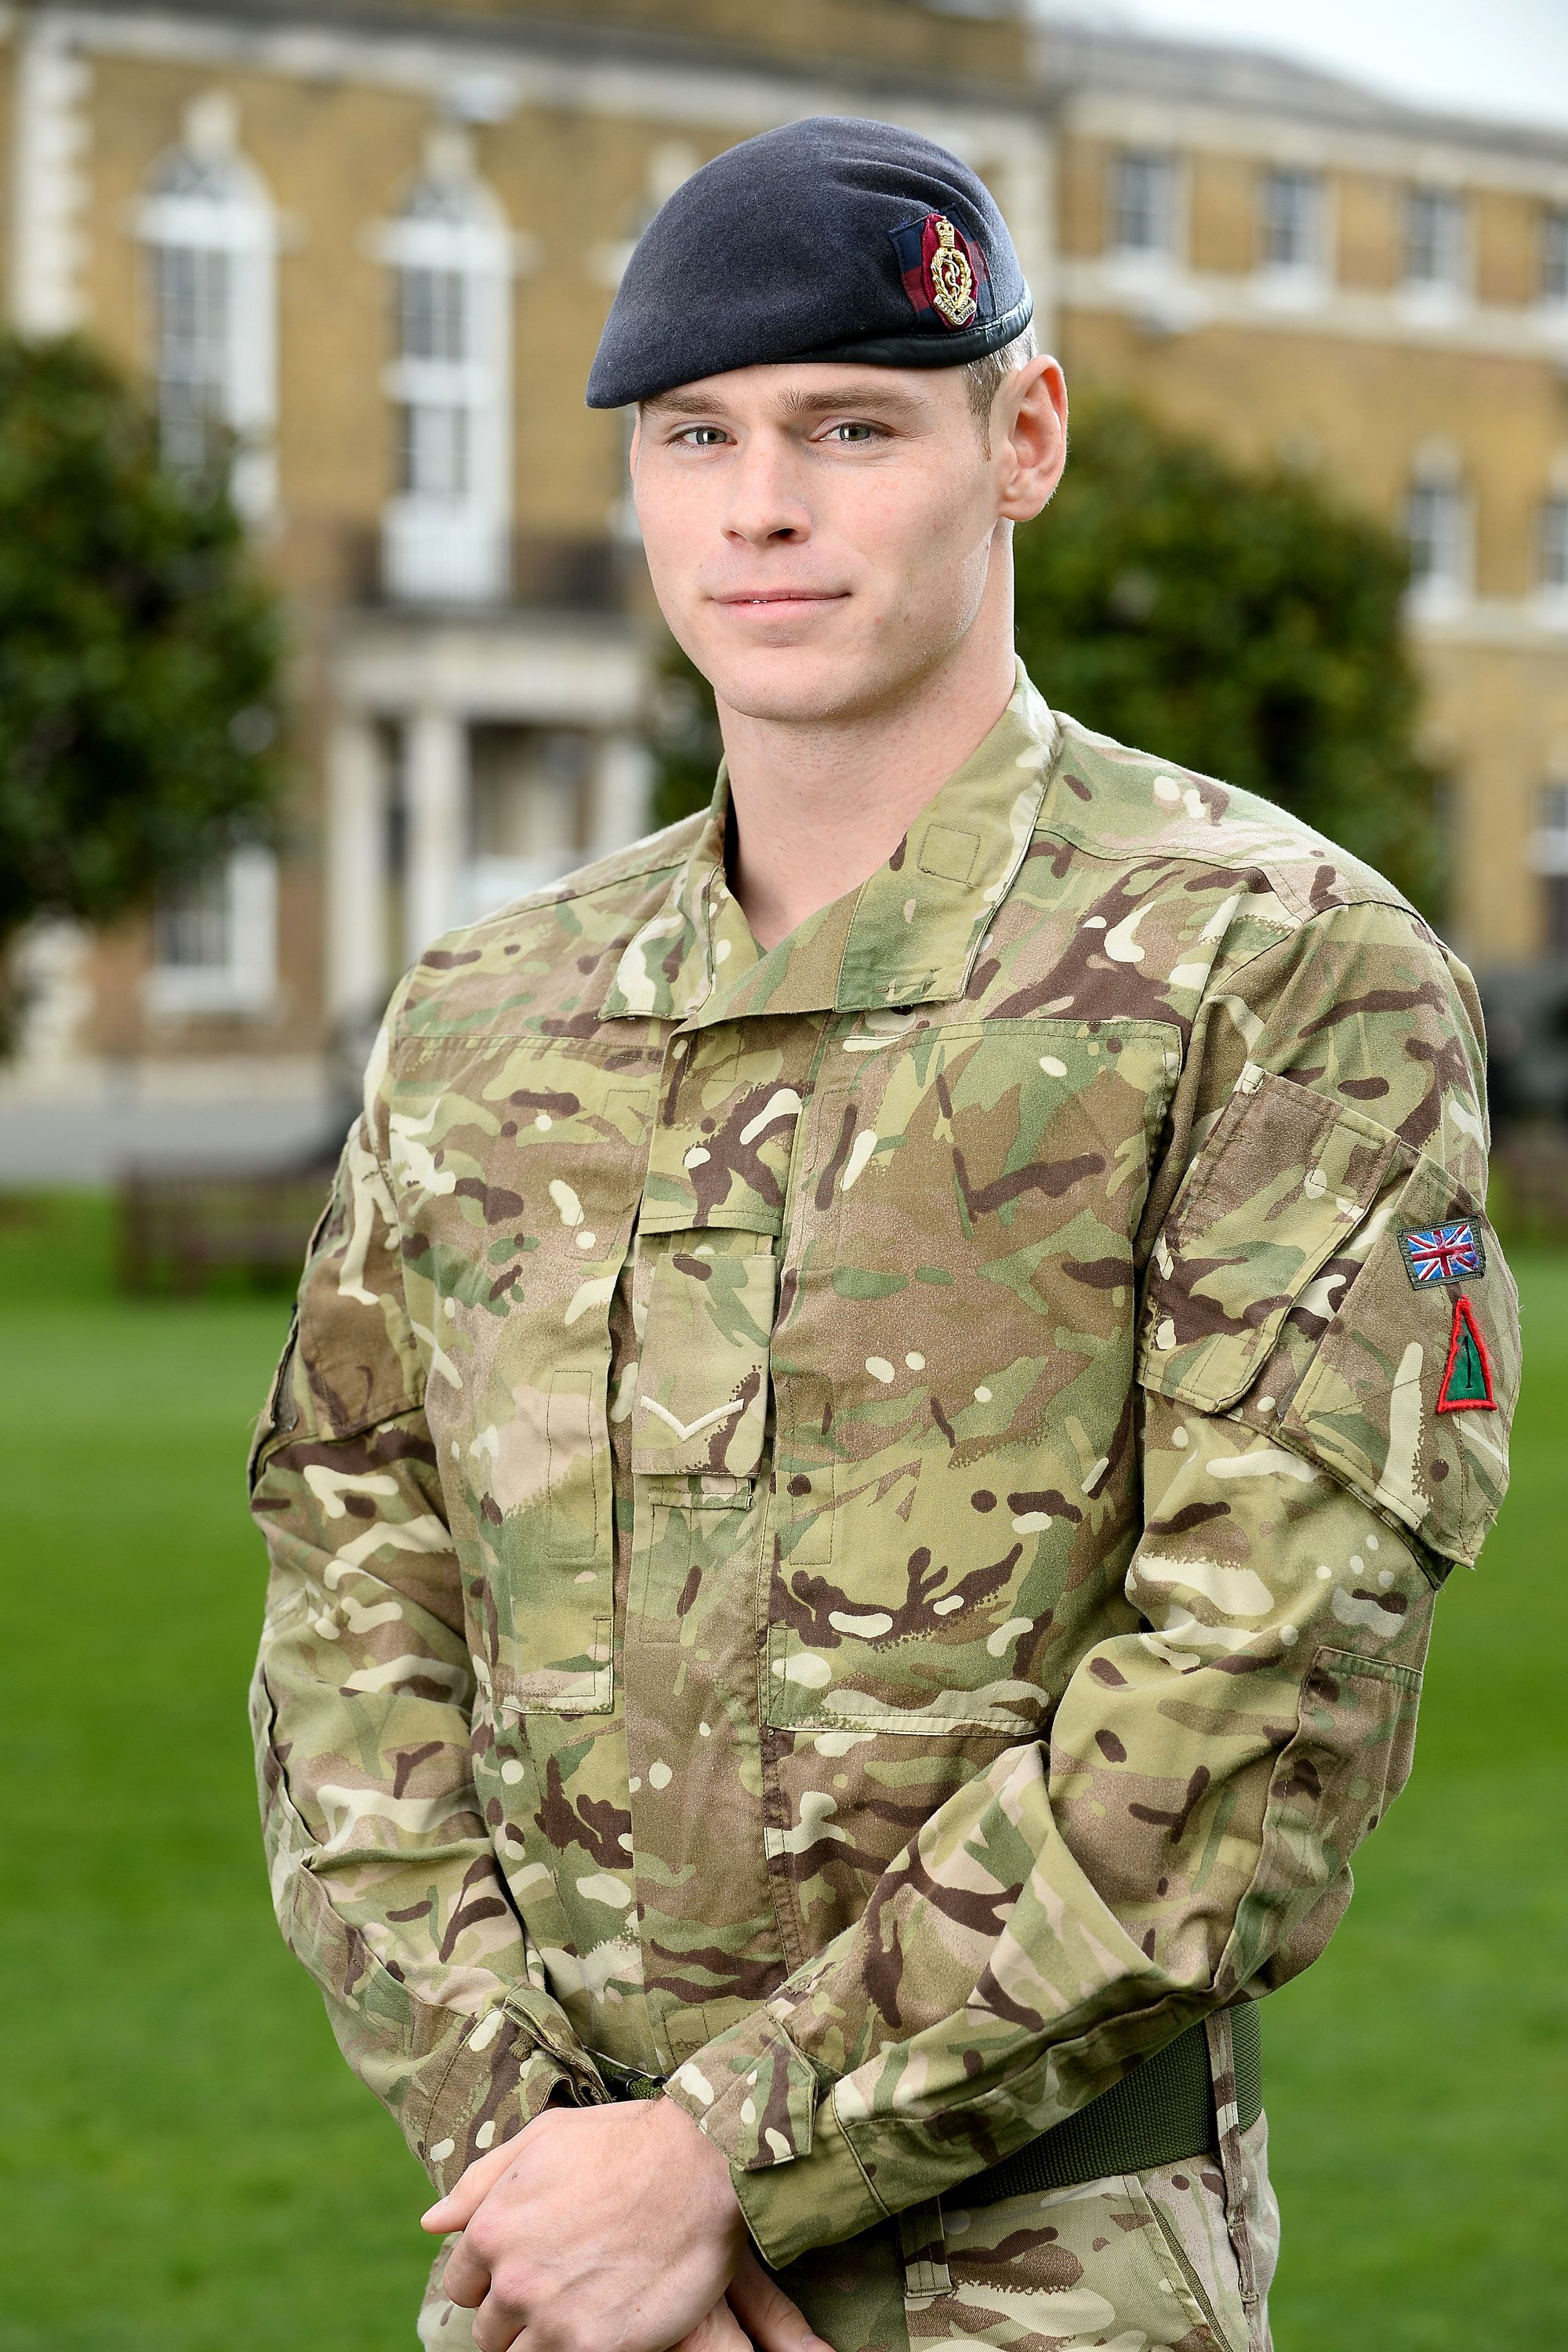 LCpl Wes Masters, of Taunton, gets the Military Cross for saving his mate's life